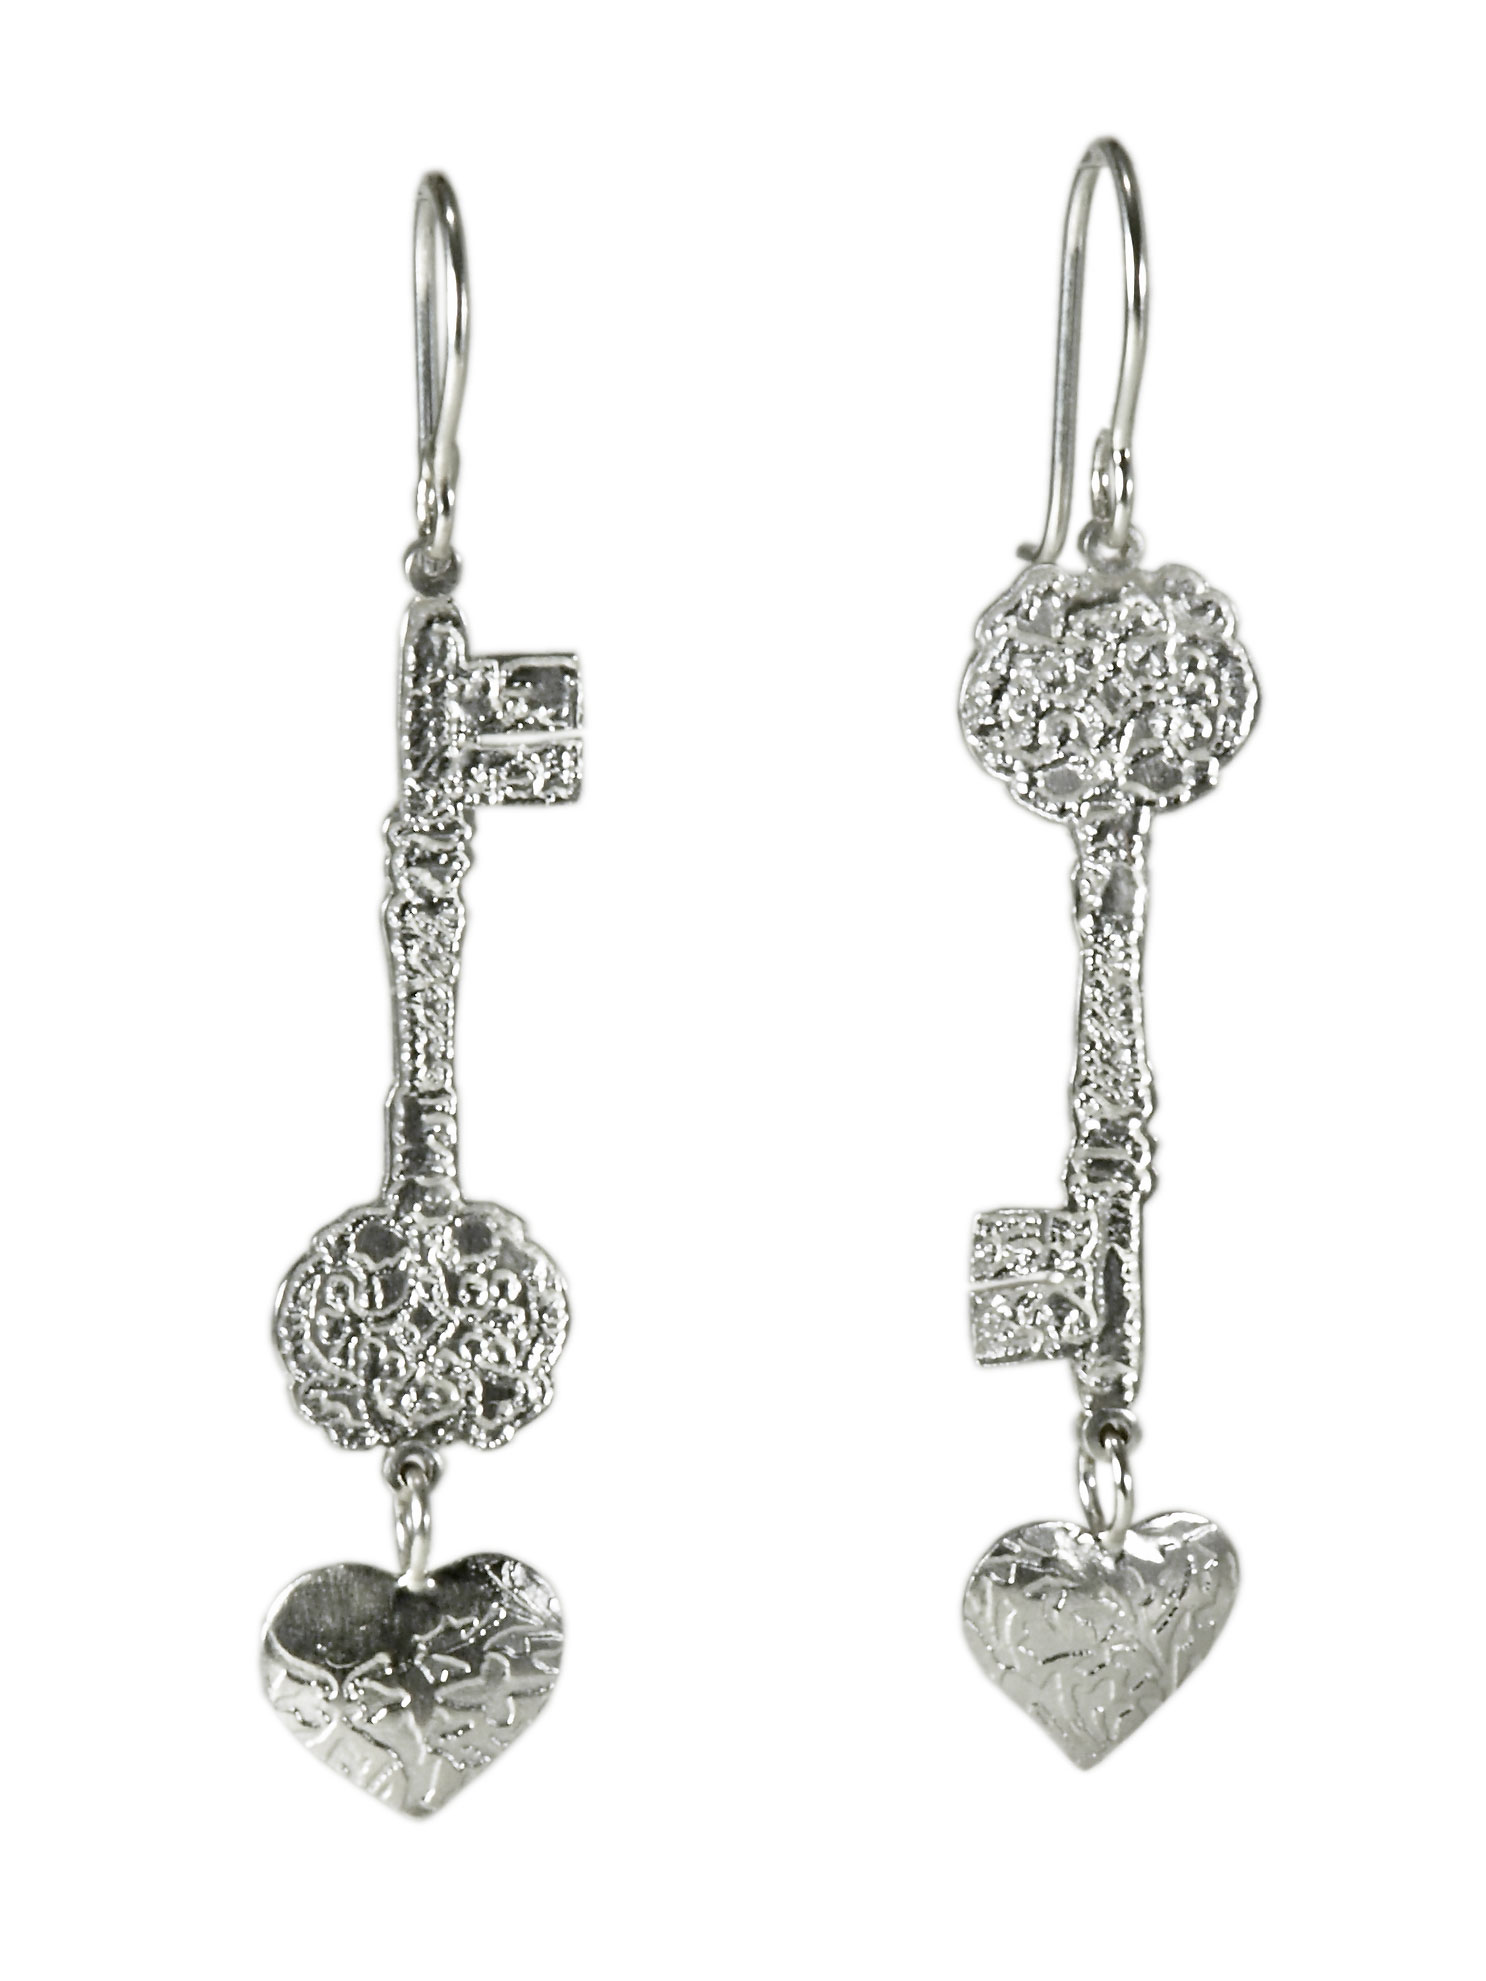 Silver Heart and Key Earrings